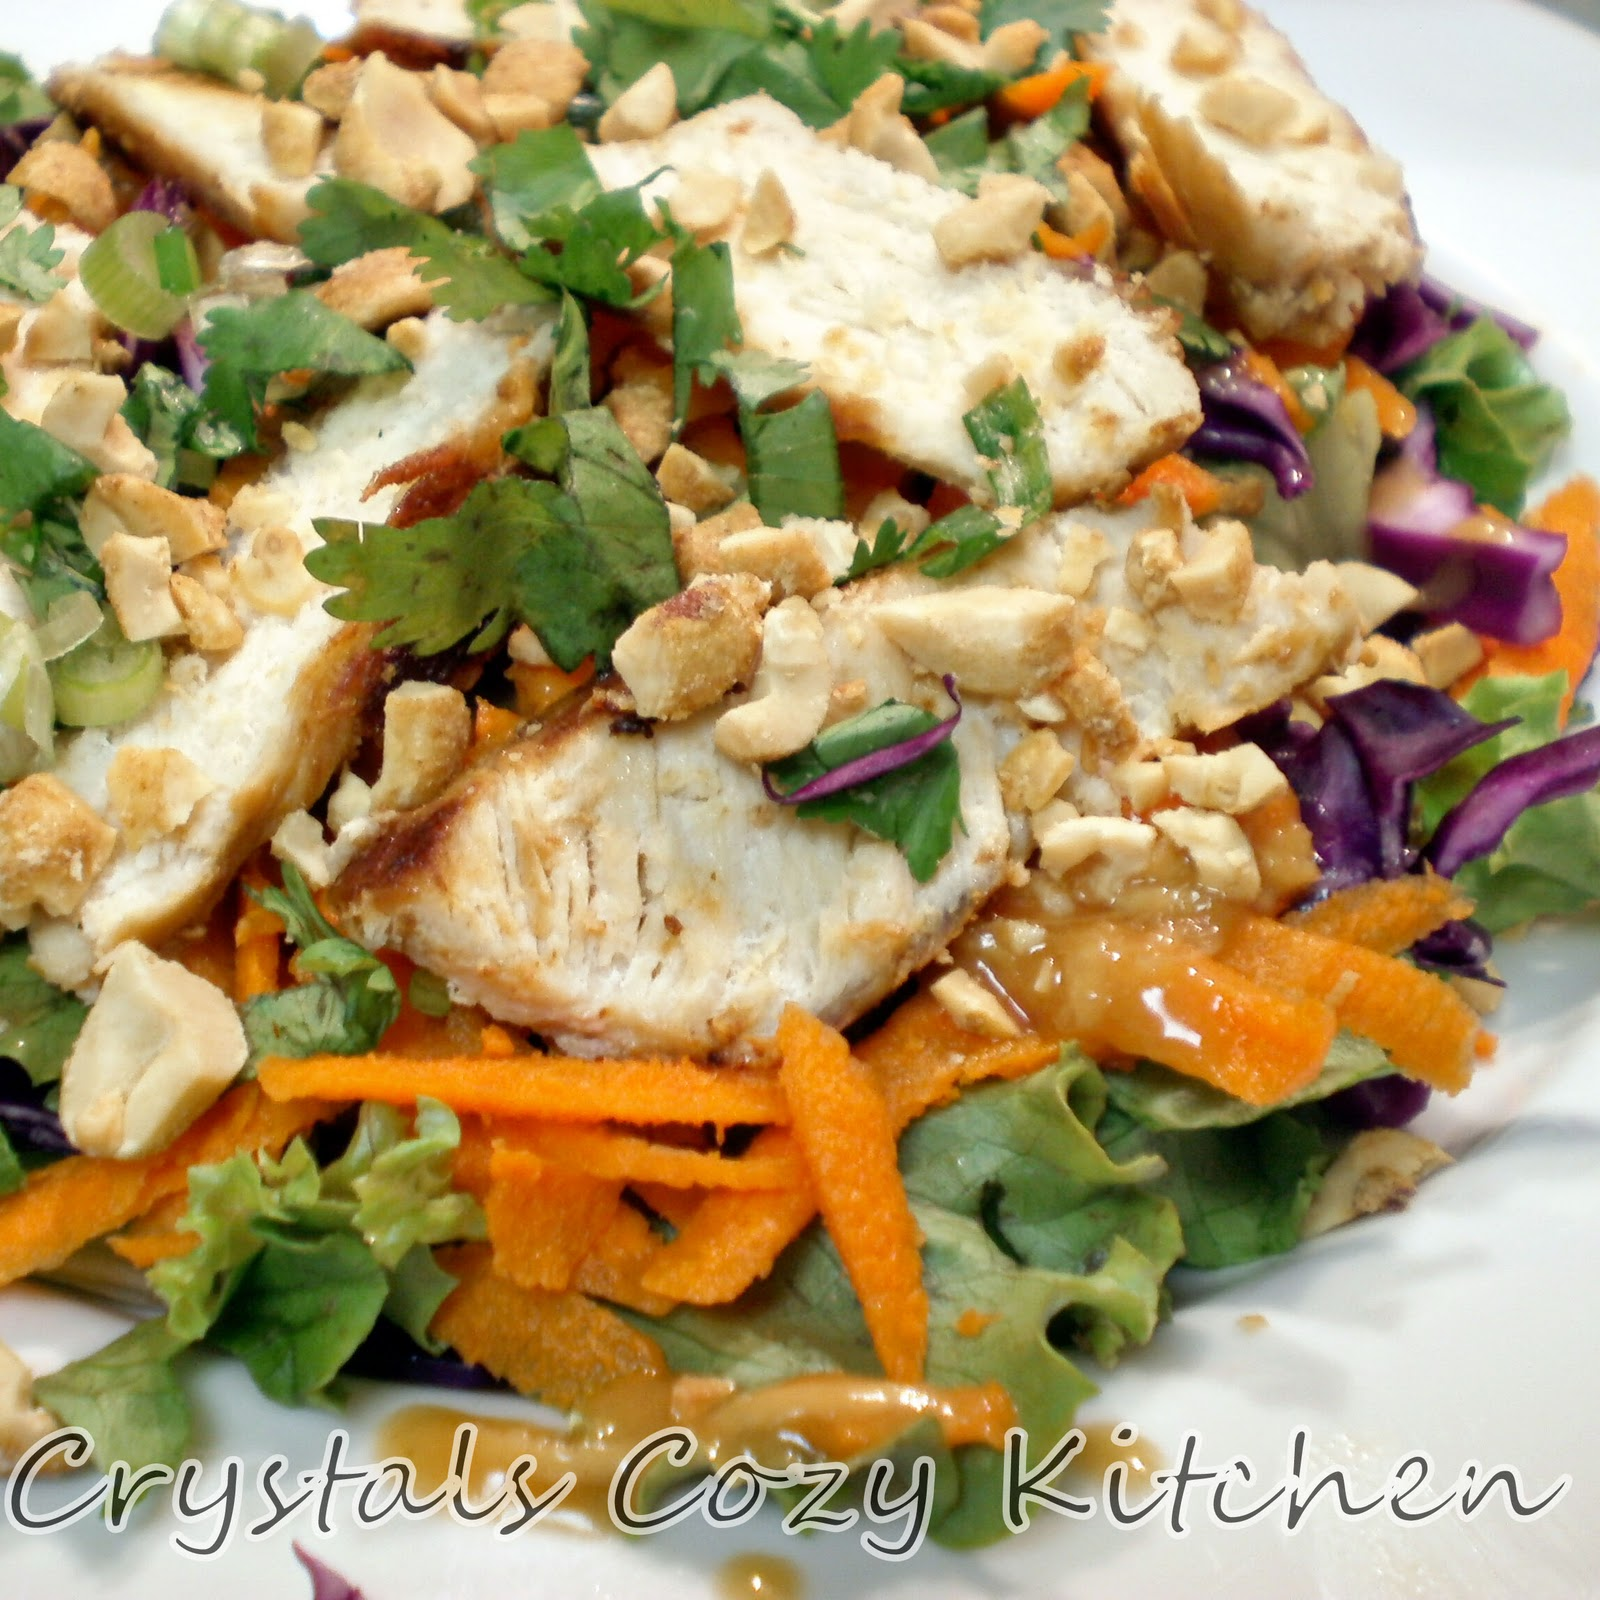 Crystal's Cozy Kitchen: Chinese Chicken Salad